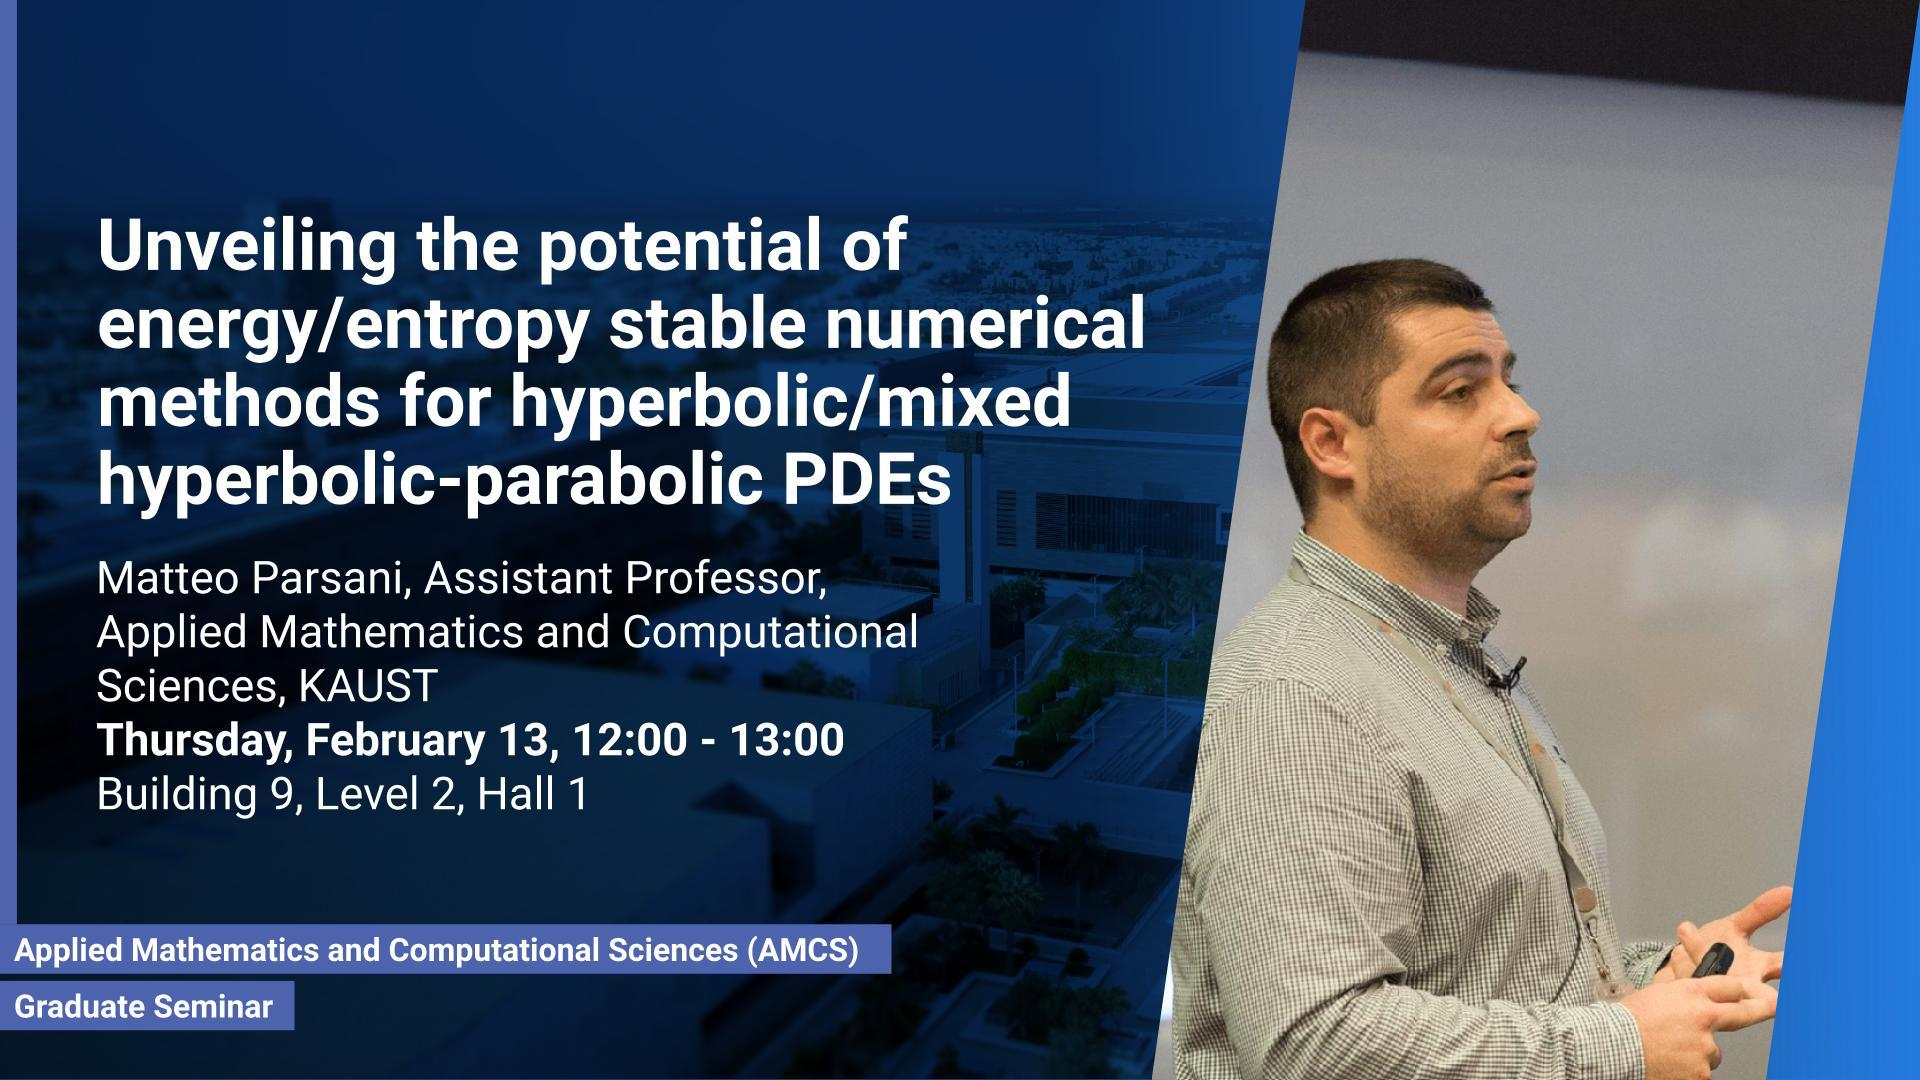 KAUST CEMSE AMCS Graduate Seminar Matteo ParsaniUnveiling the potential of energy/entropy stable numerical methods for hyperbolic/mixed hyperbolic-parabolic PDEs